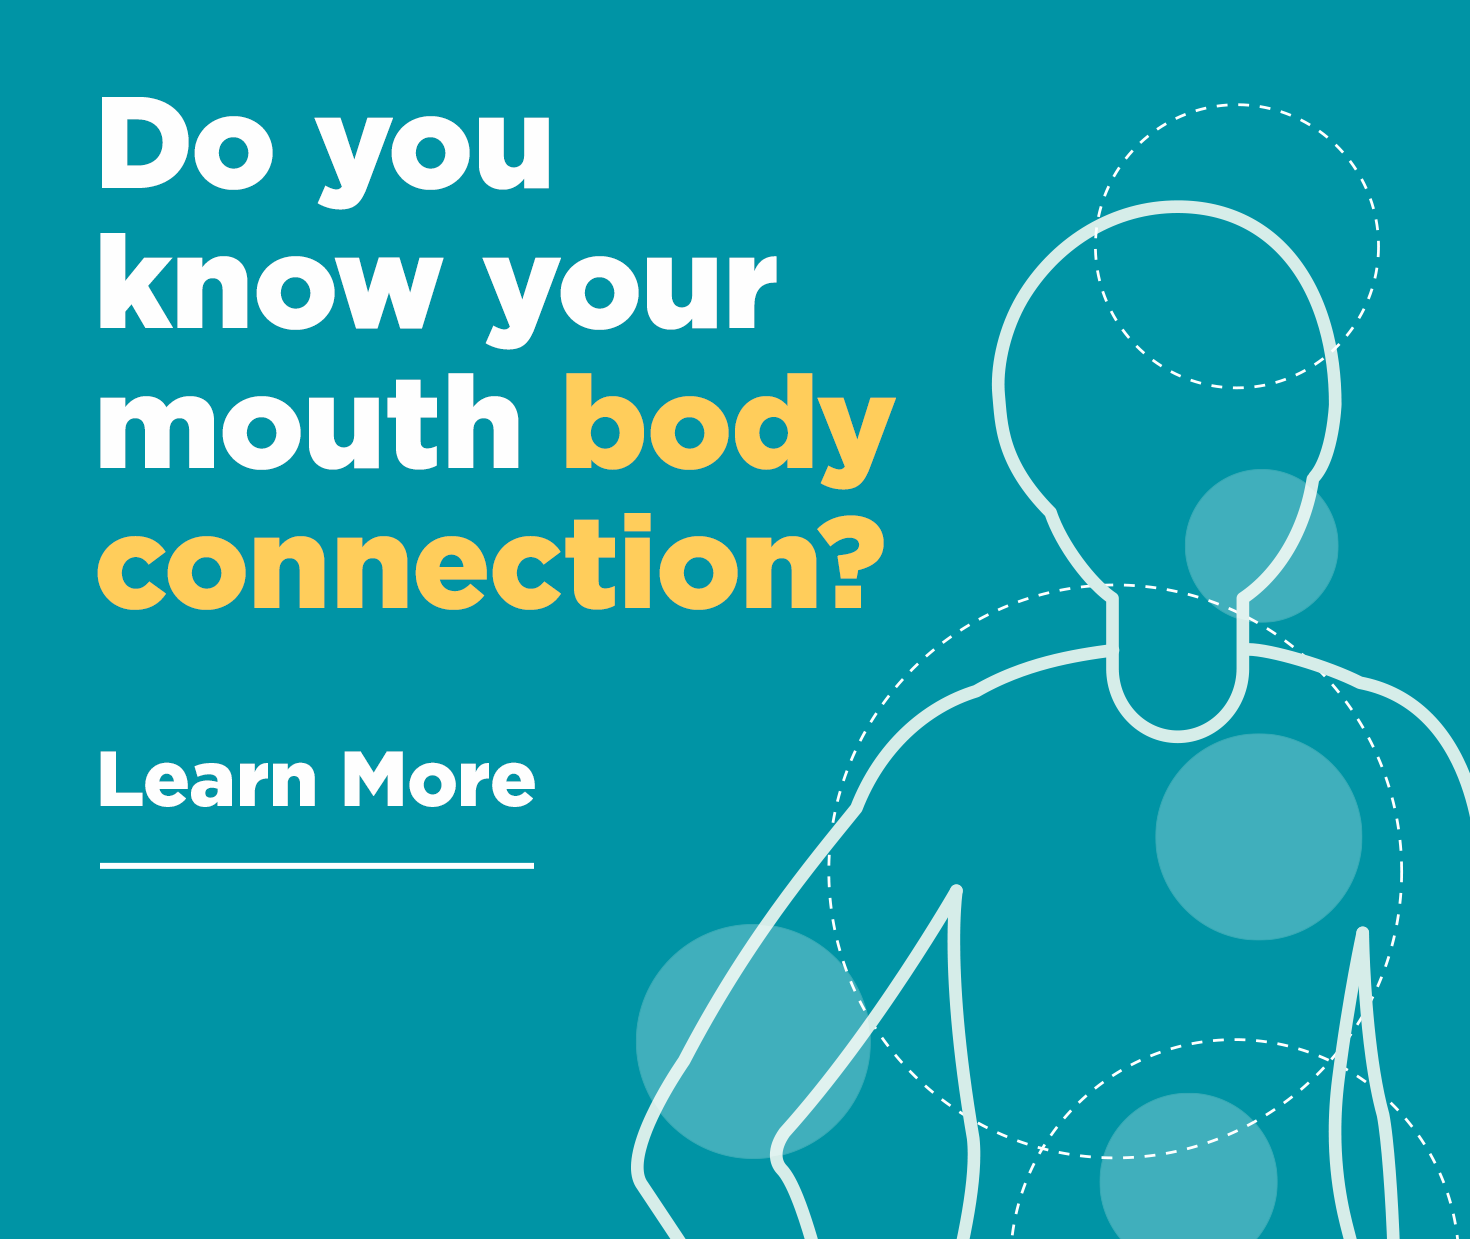 Do you know your mouth body connection? Learn More. - Dentists of Gilbert Crossroads